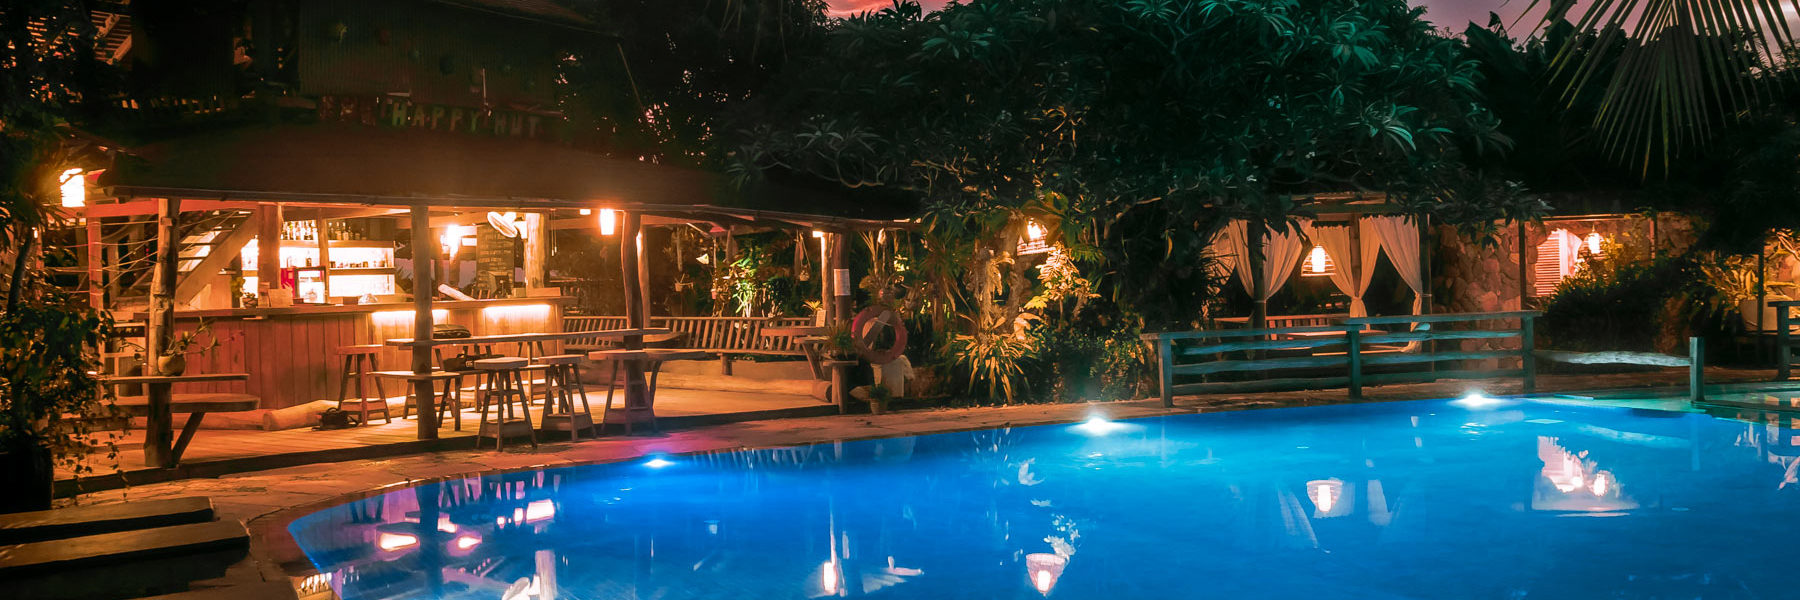 The Secret and Garden Swimming Pool at night with it's bar at guest disposal and tropical plants in Veranda Natural Resort, Kep - Cambodia.